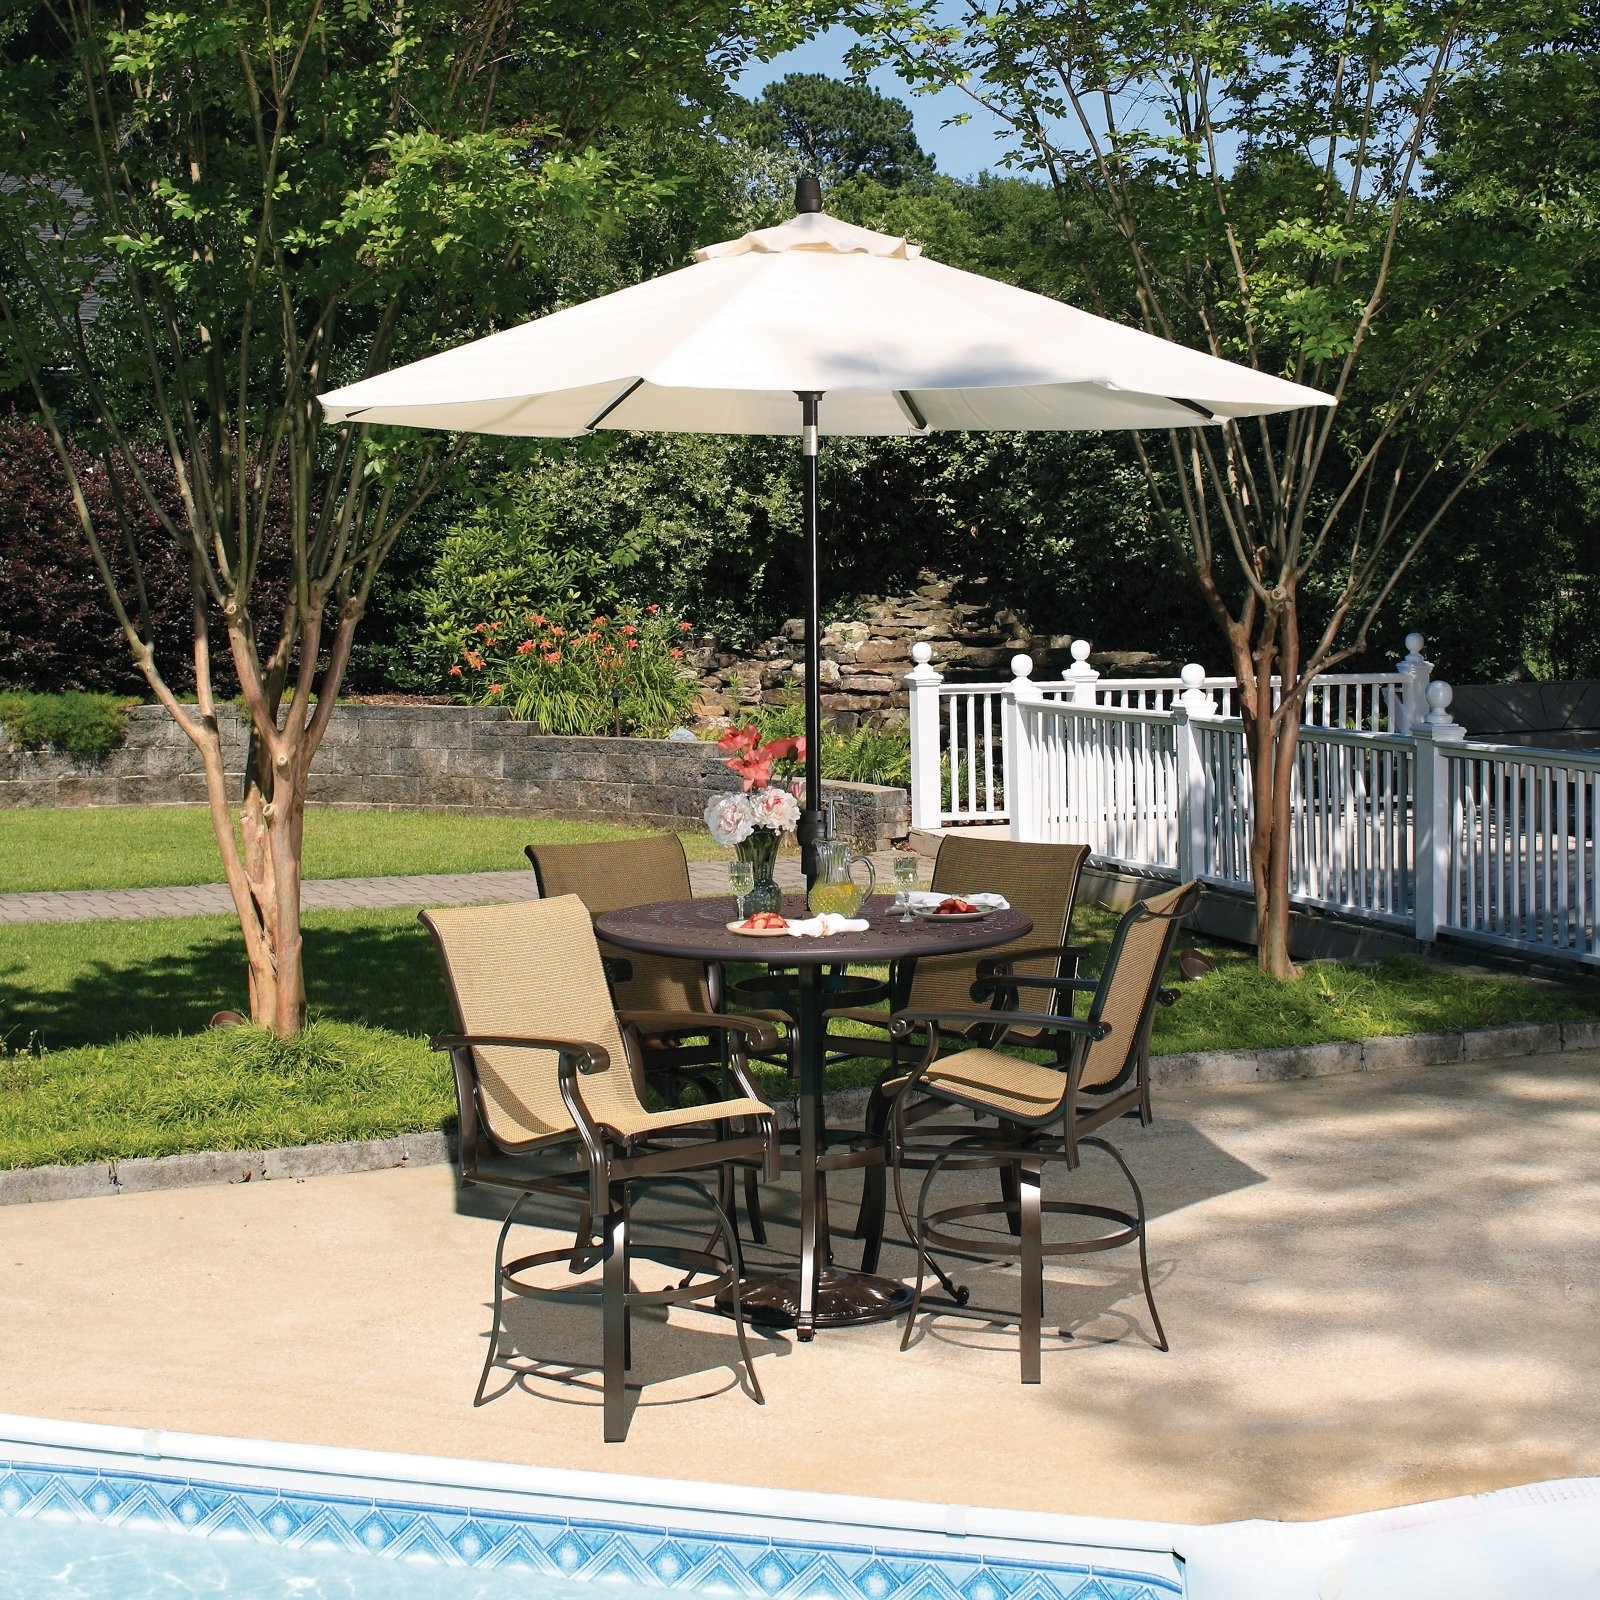 Widely Used Patio Umbrellas Costco Fresh Outdoor Furniture Covers Costco From 14 Throughout Costco Patio Umbrellas (View 11 of 20)